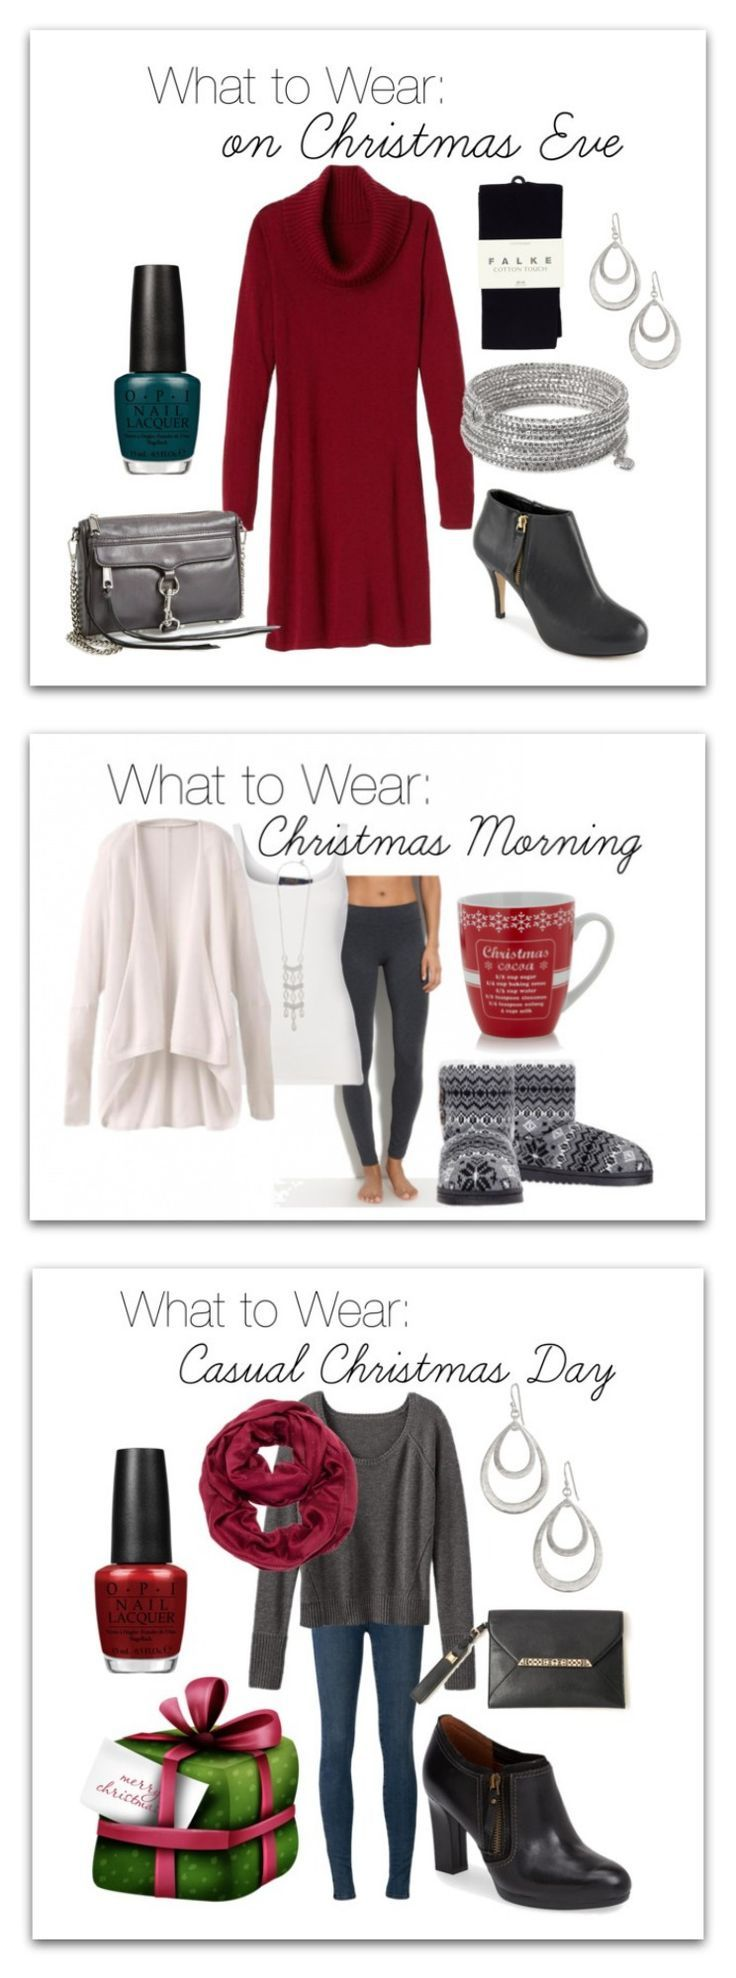 12 Days of Holiday Outfits Wearable Christmas Outfit